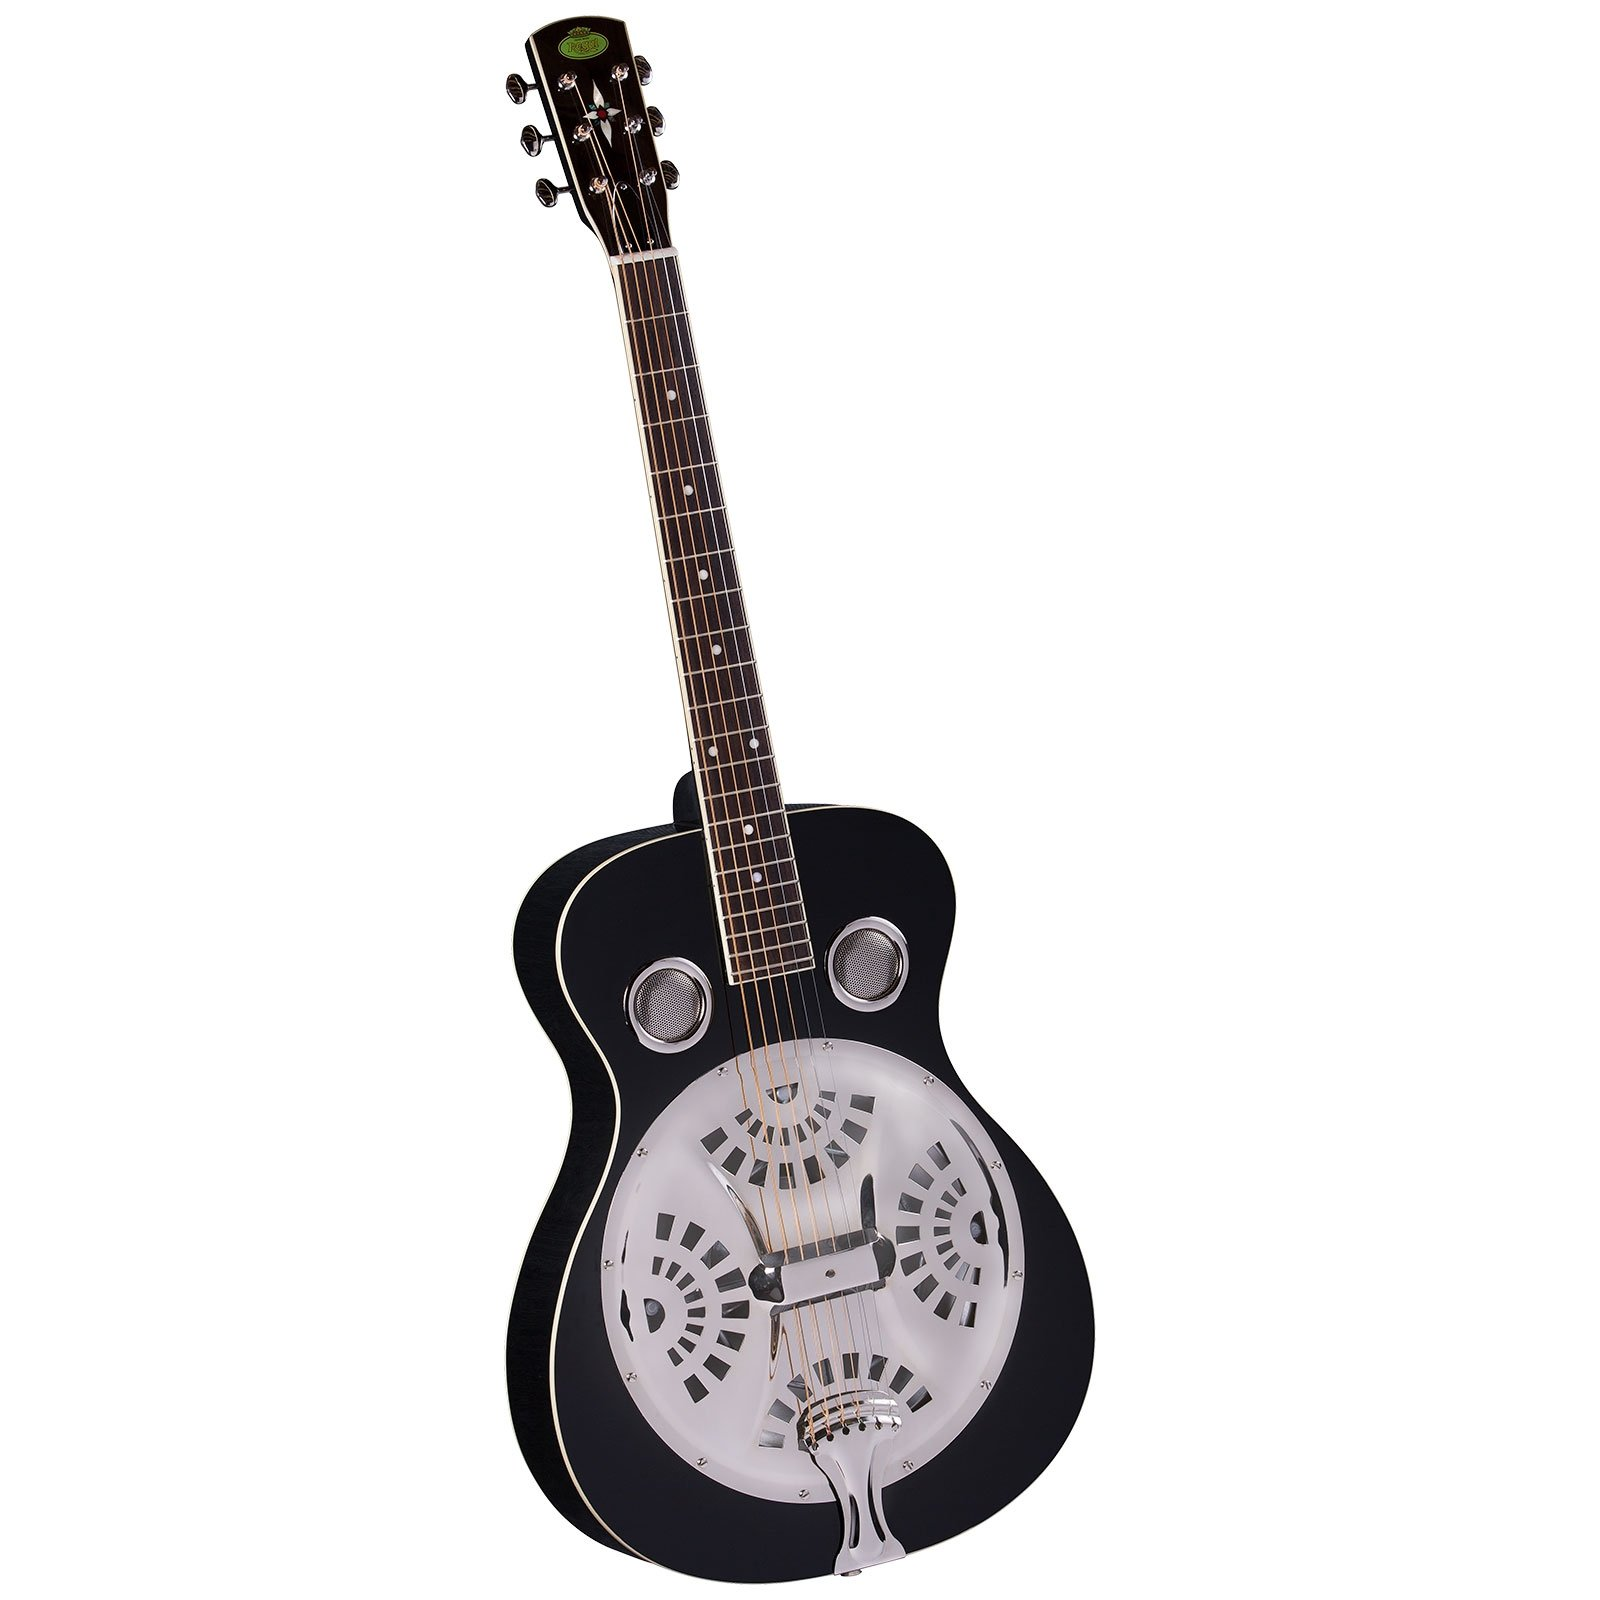 Regal RD-40B Studio Series Roundneck Resophonic Guitar - Black by Regal Resophonic Guitars